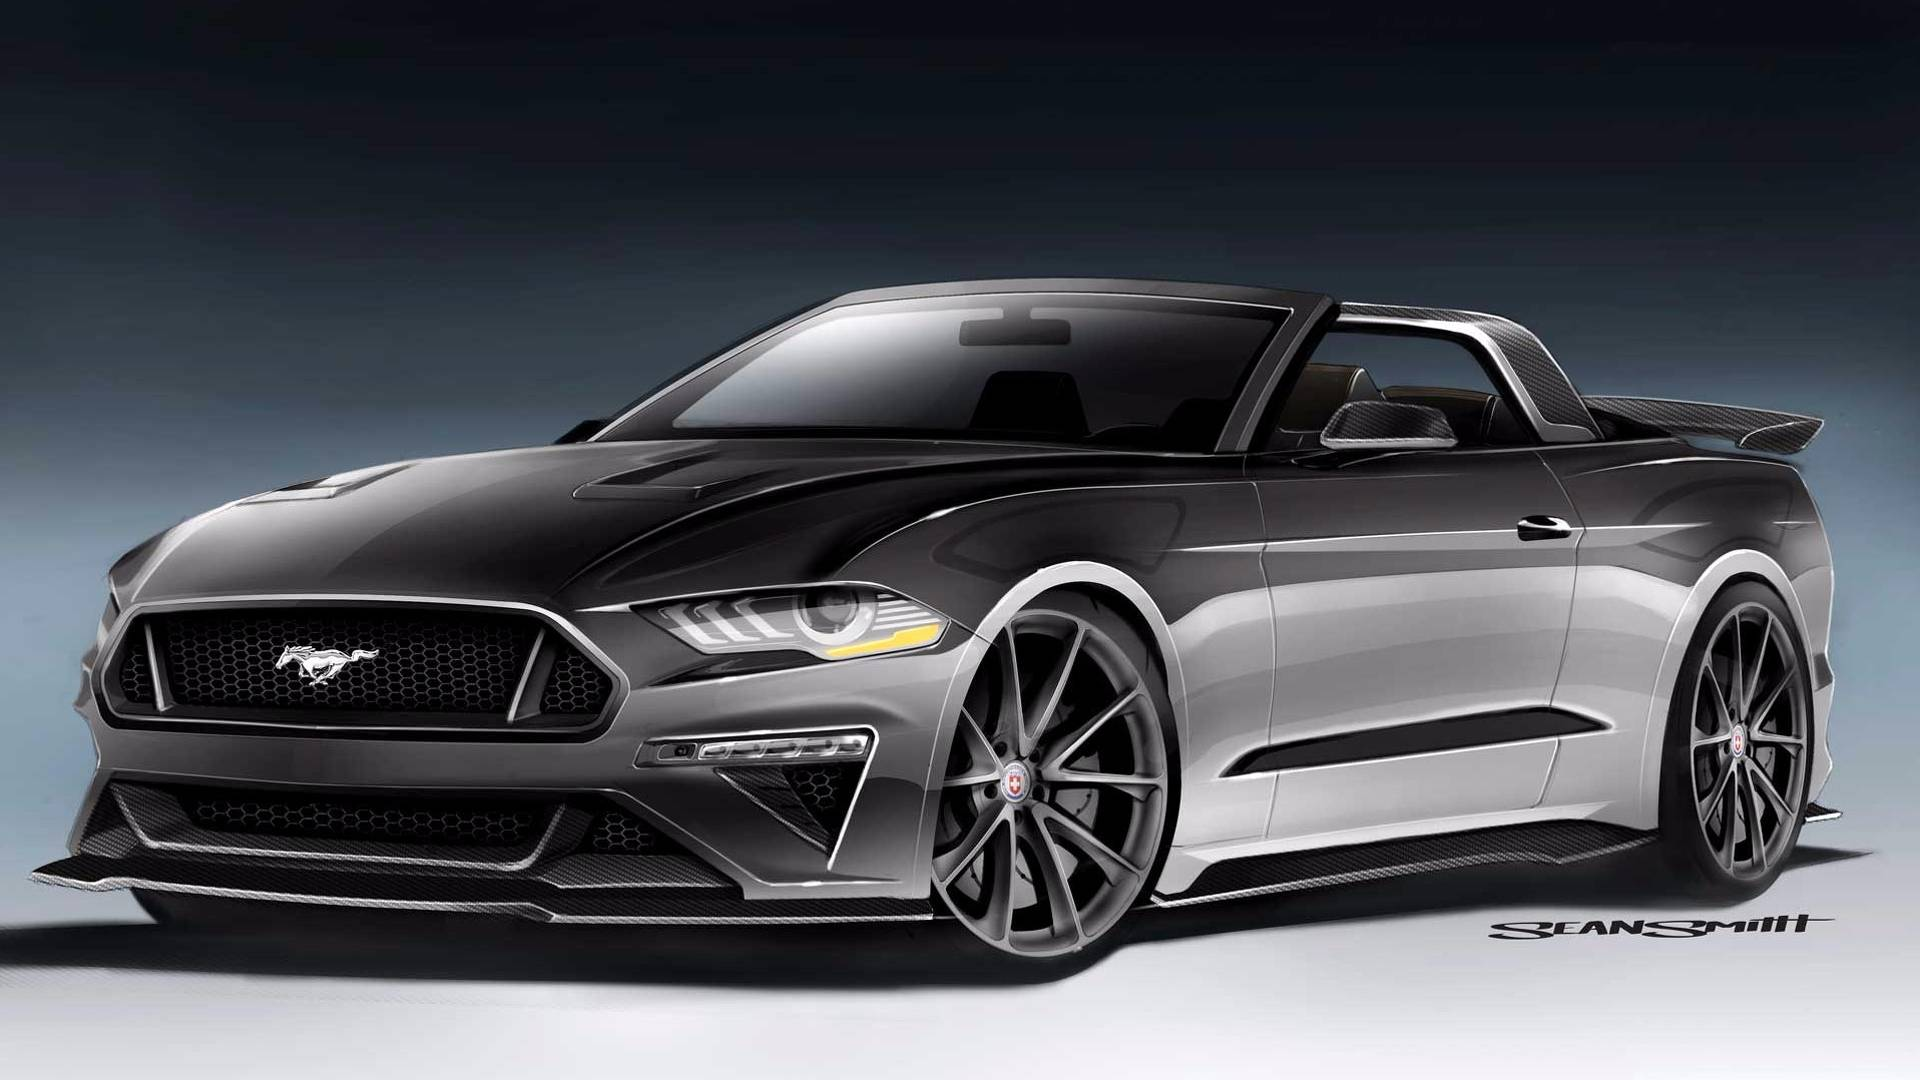 Ford unveils magnificent seven mustang lineup for sema